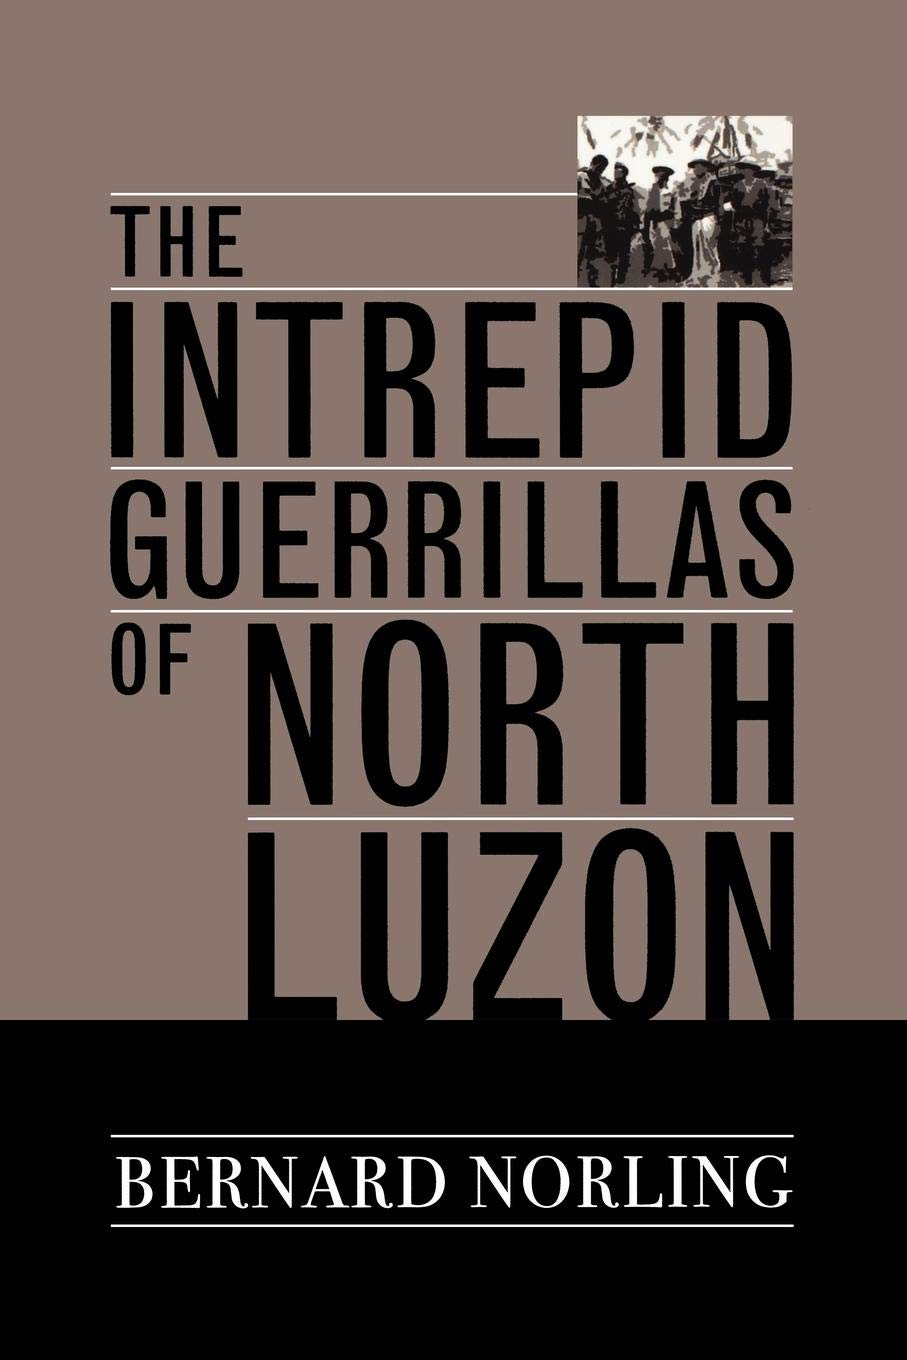 The Intrepid Guerrillas of North Luzon: Bernard Norling